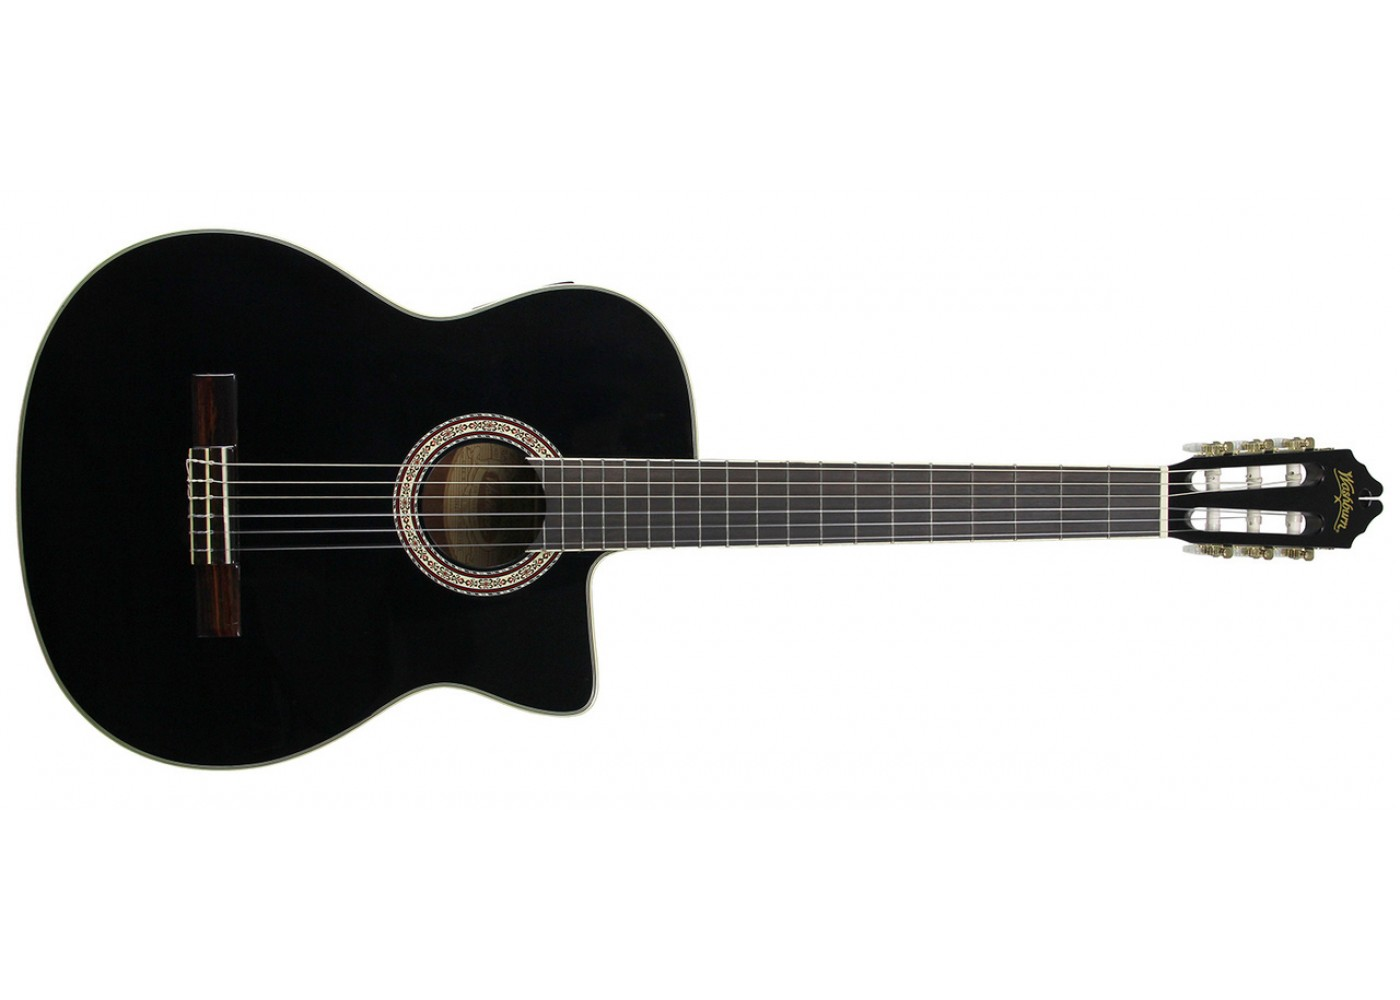 washburn c5ceb acoustic electric classical nylon string guitar black finish sight sound music. Black Bedroom Furniture Sets. Home Design Ideas